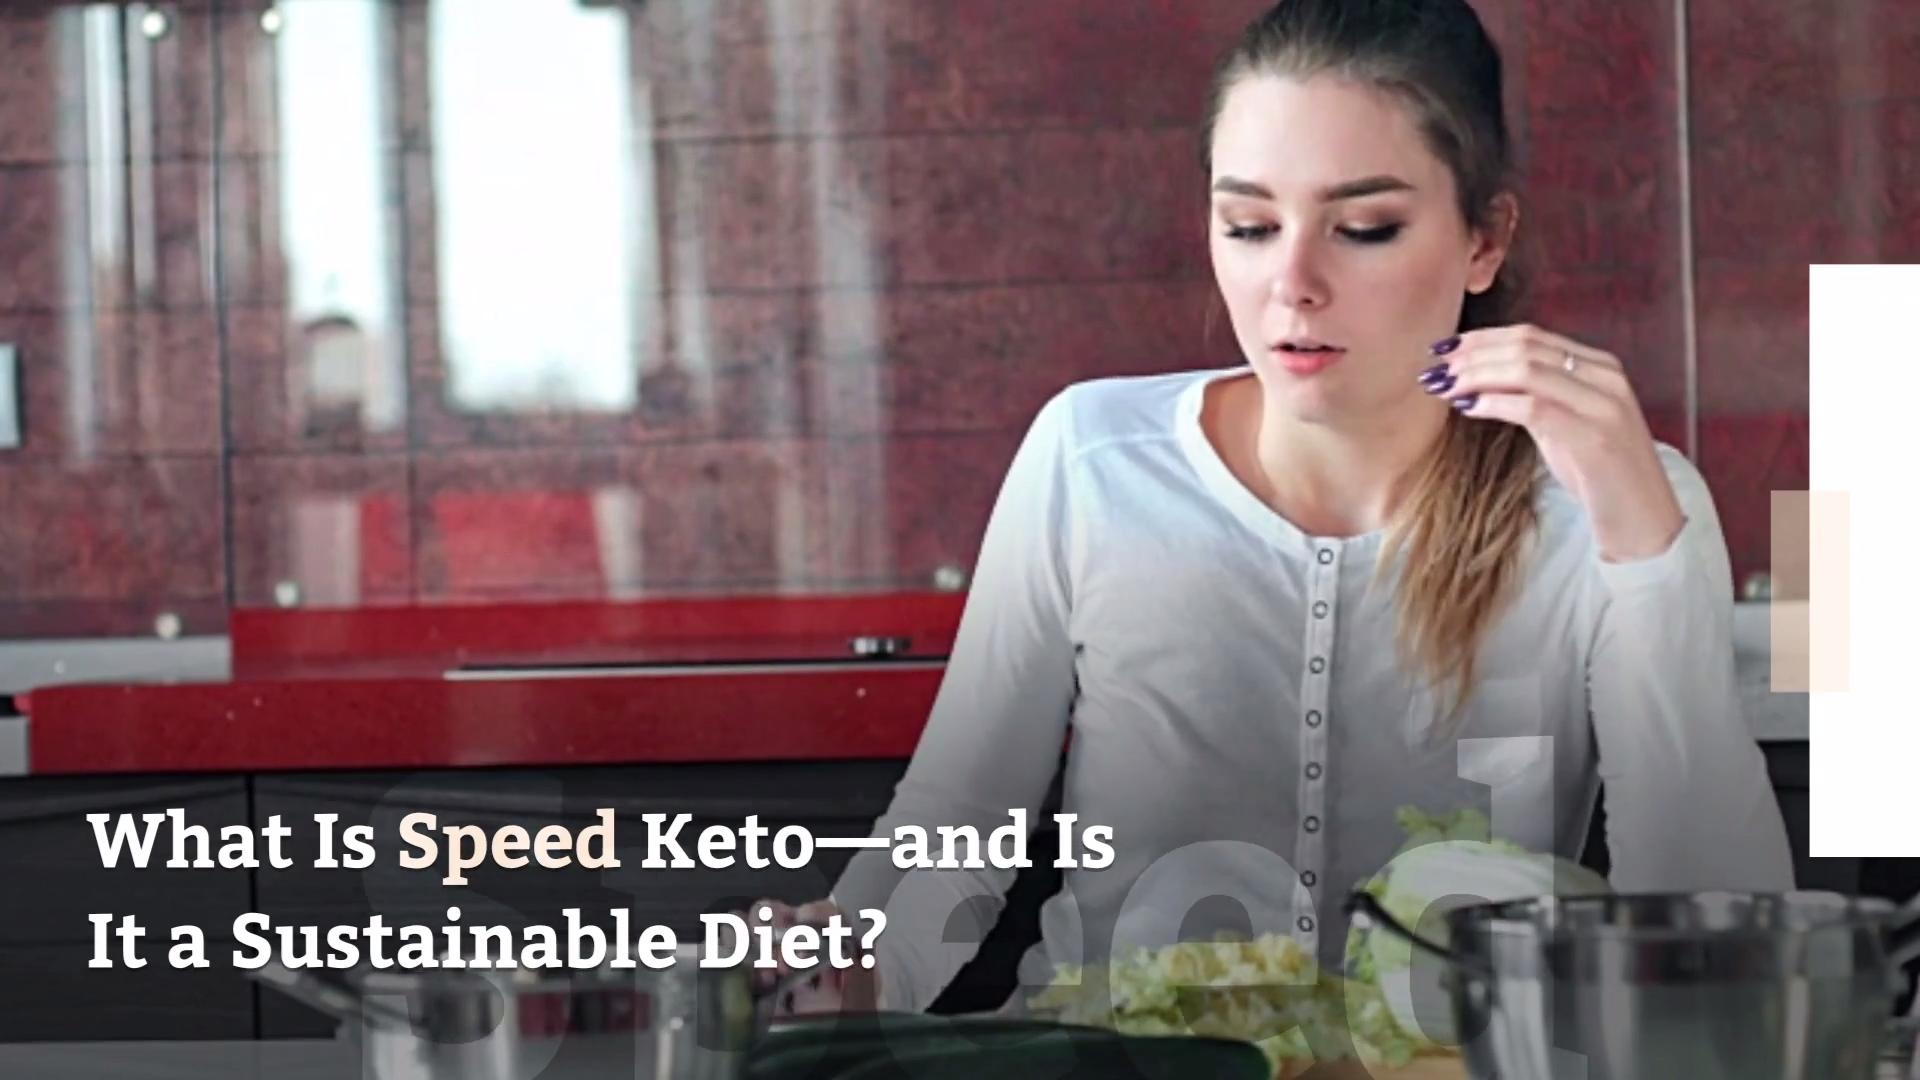 What Is Speed Keto—and Is It a Sustainable Diet?